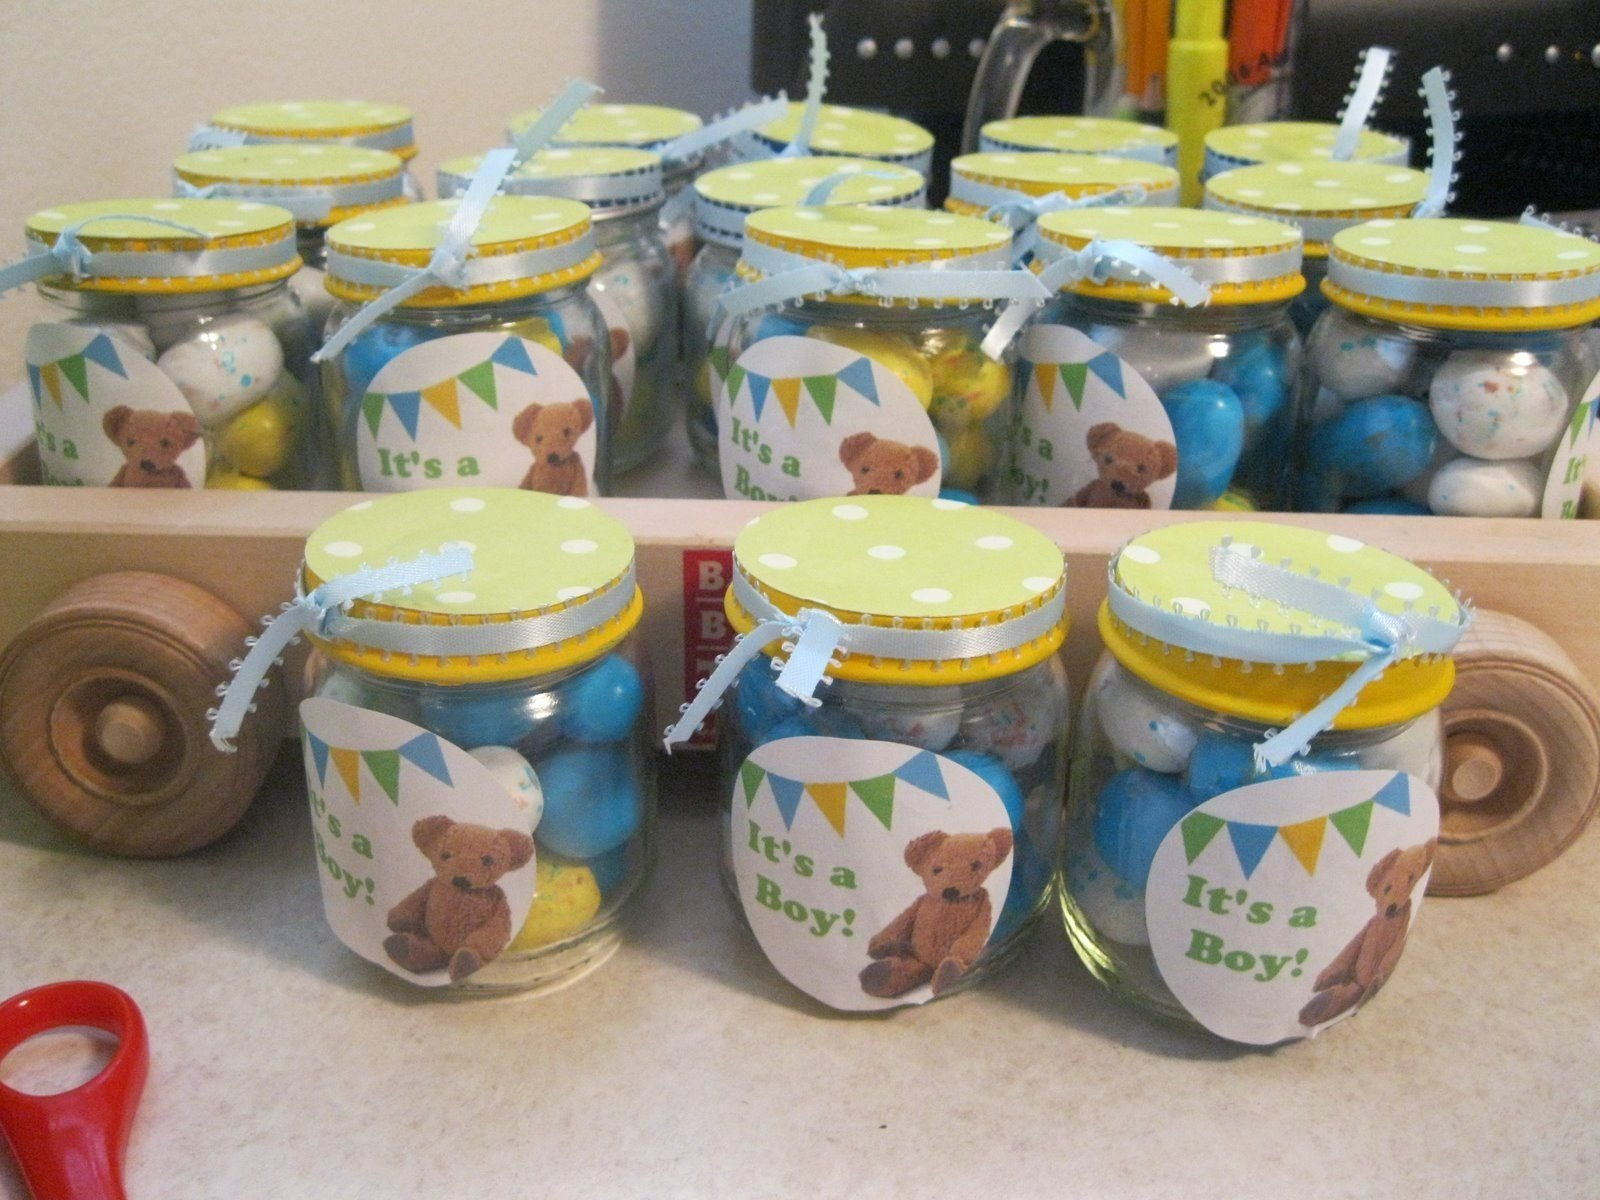 10 Great Craft Ideas For Baby Food Jars food jar baby shower crafts easter candy is great for showers so 1 2020